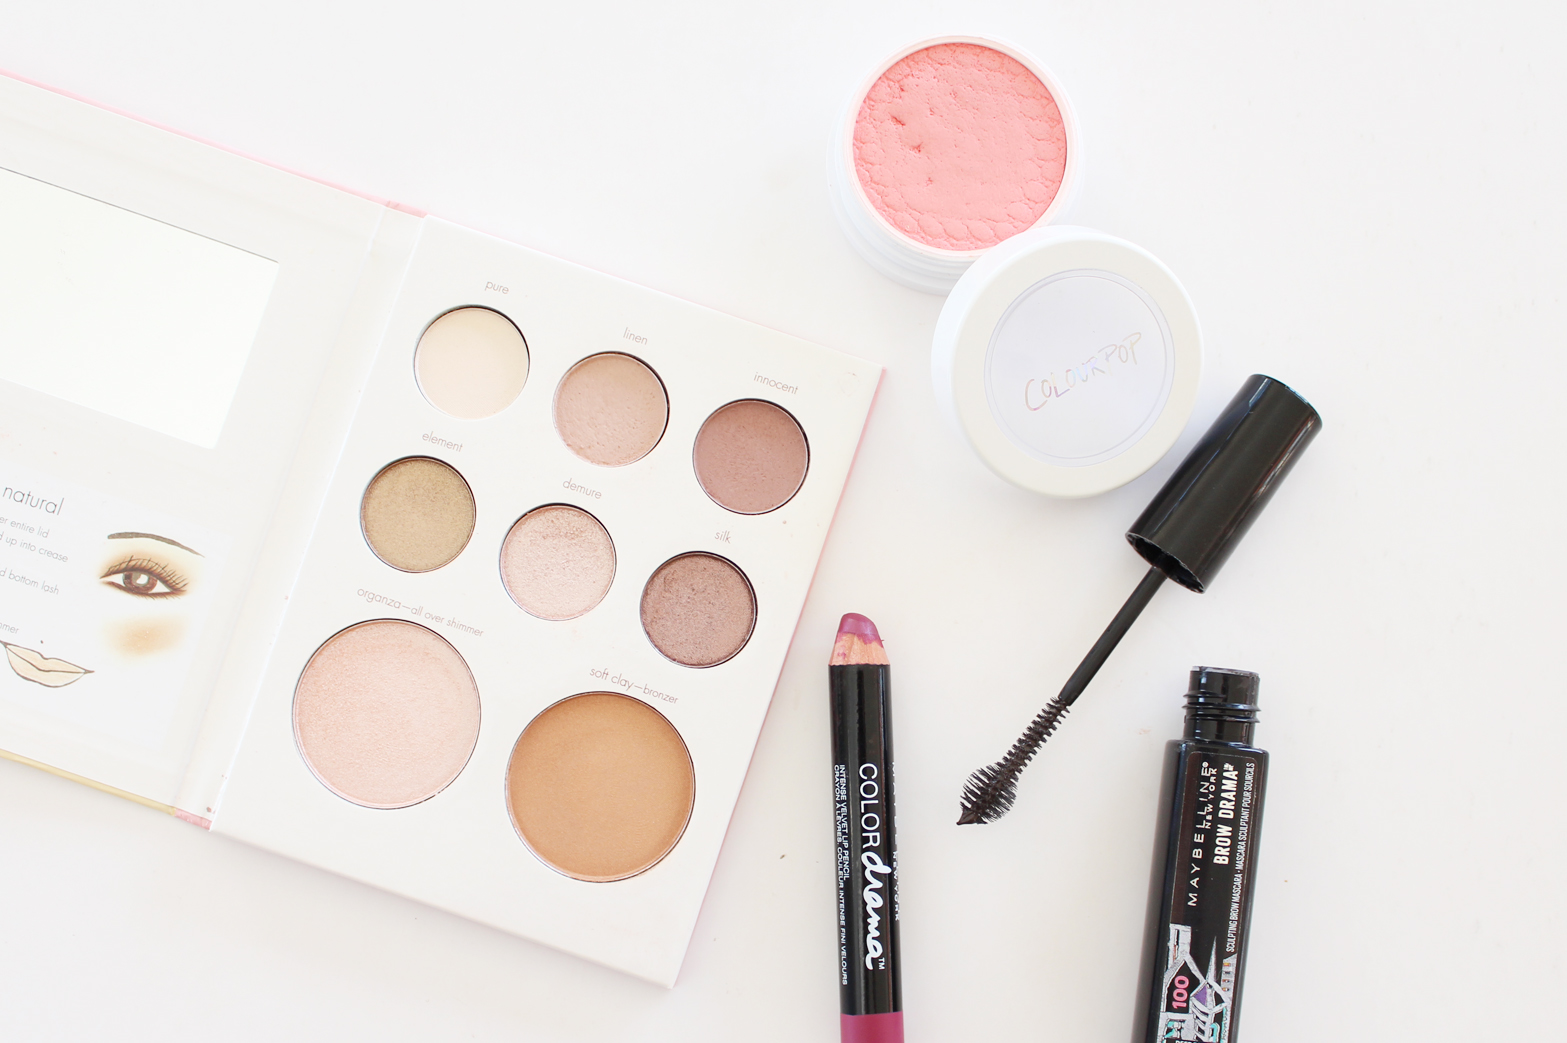 MOST LOVED | May '15 - Stila, Maybelline, ColourPop, Anatomicals, Daiso - CassandraMyee